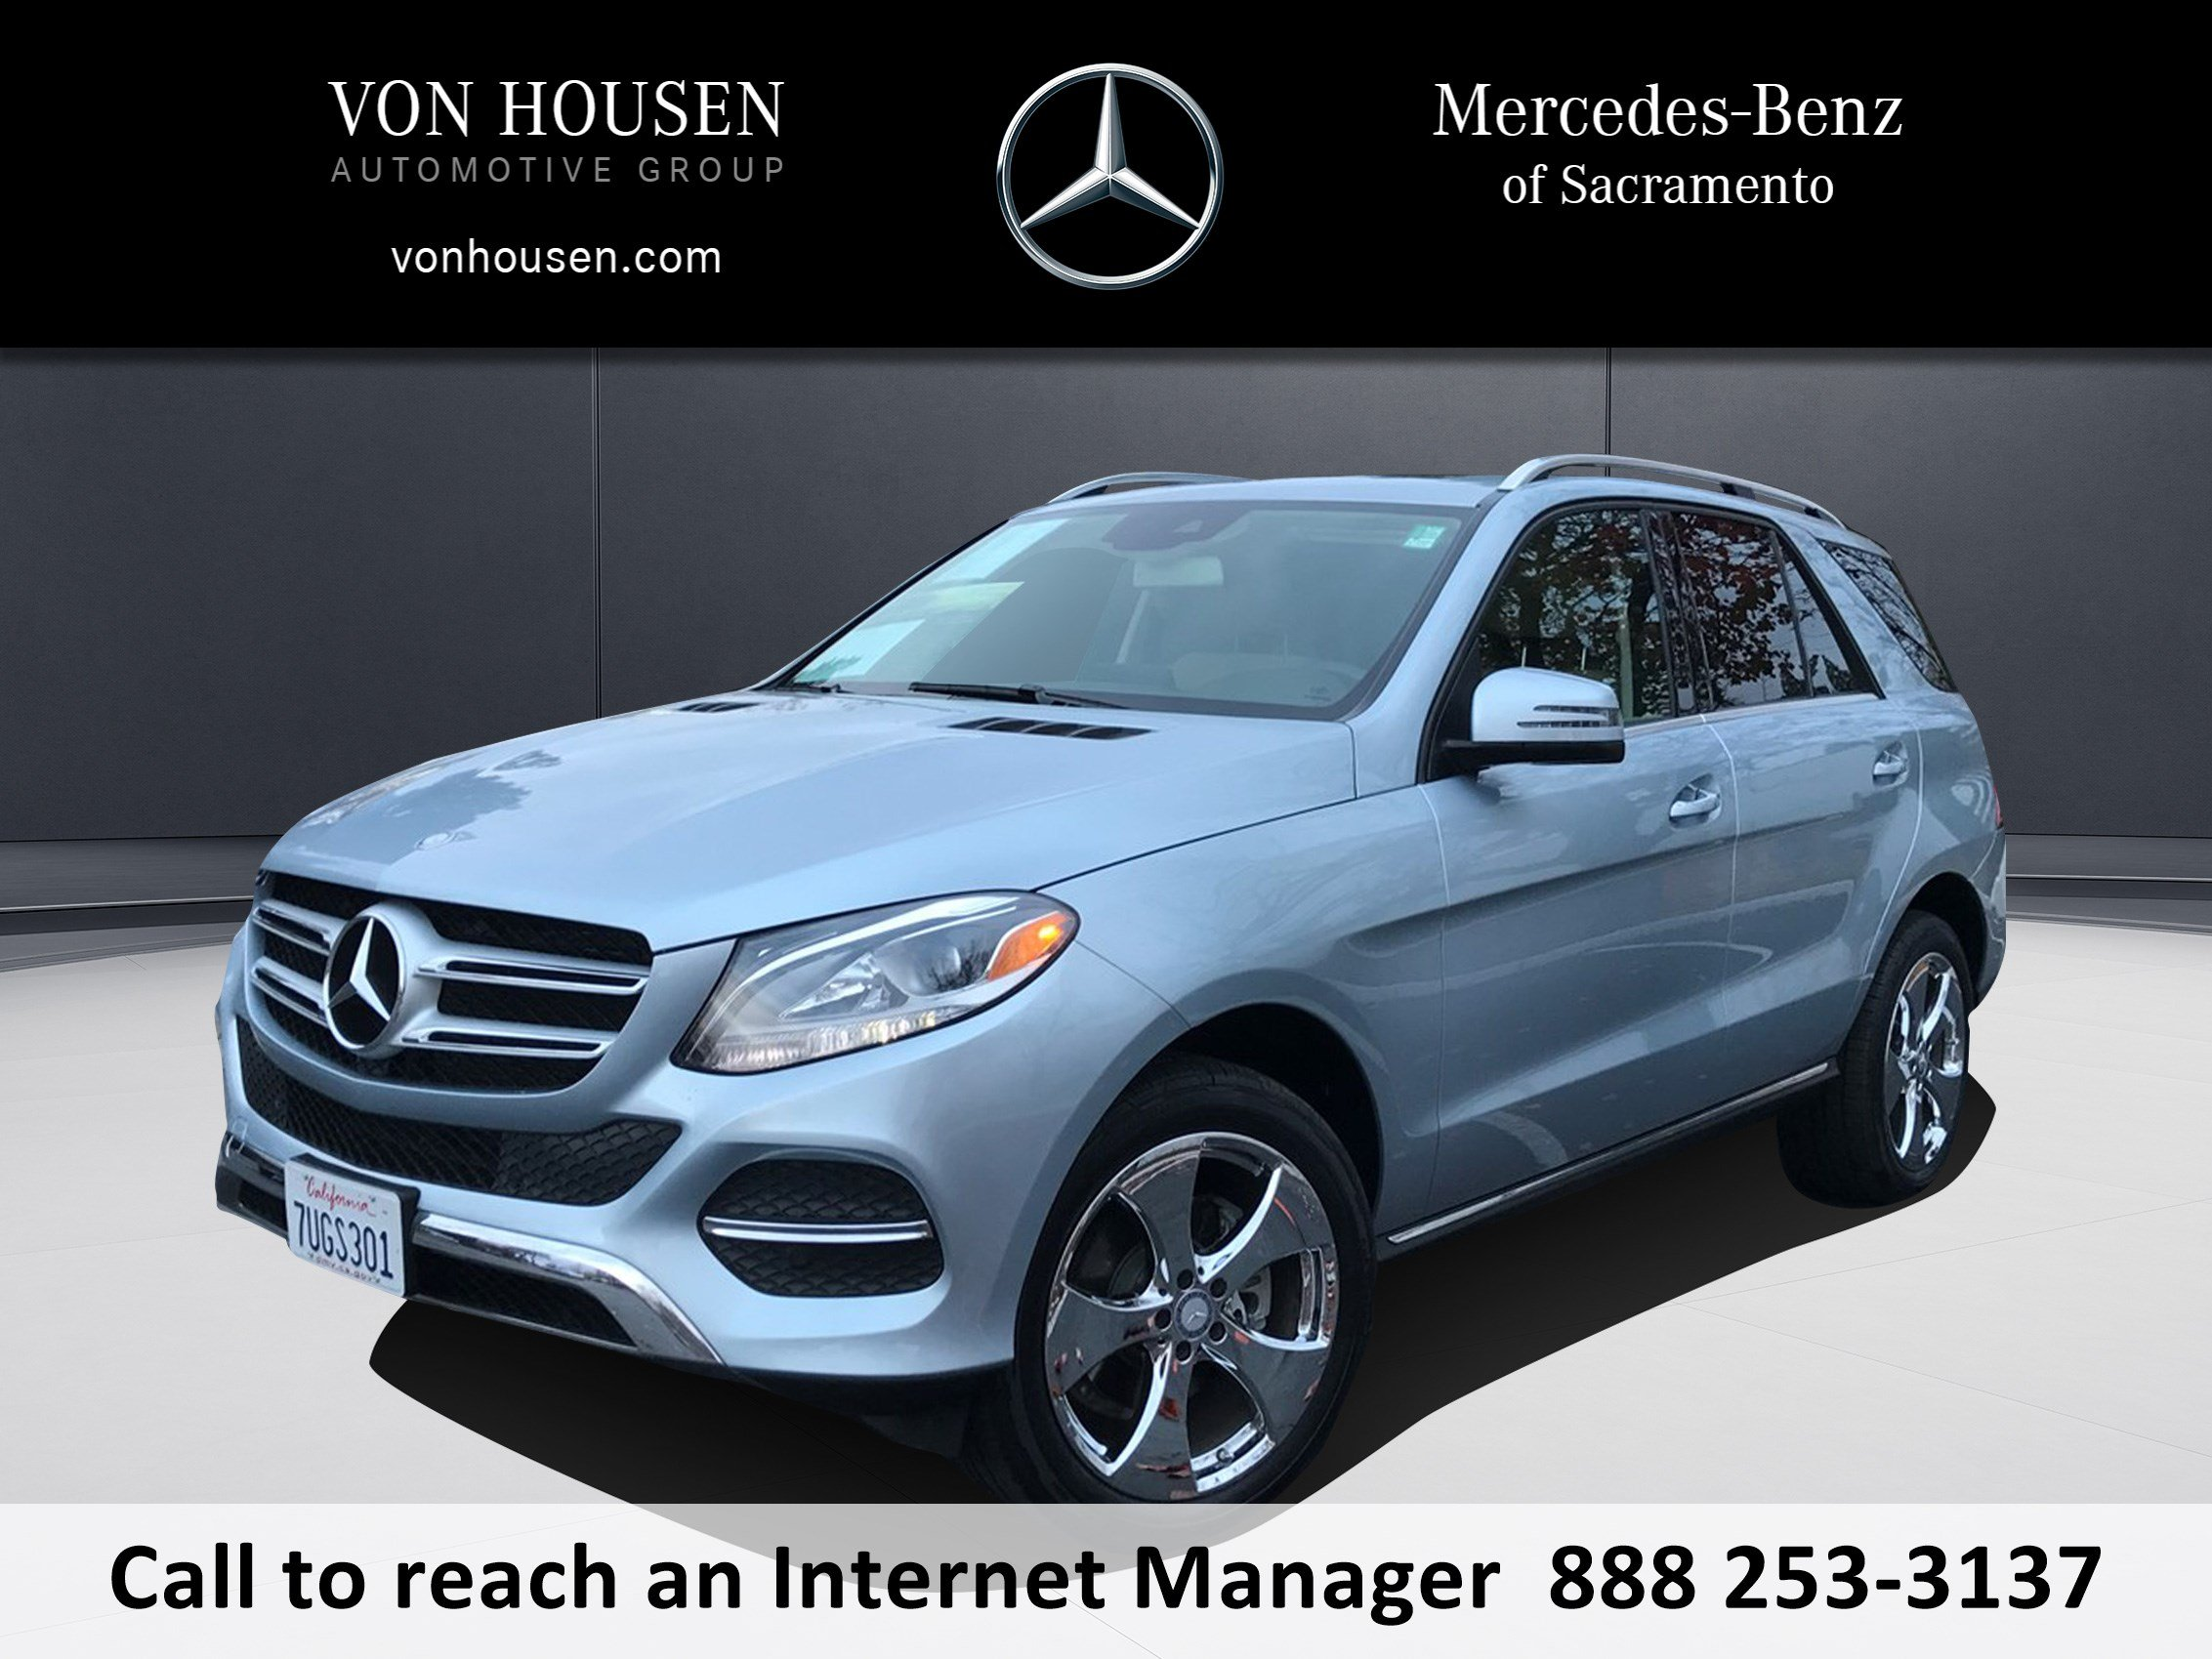 Certified Pre Owned 2016 Mercedes Benz GLE GLE 350 SUV in Sacramento